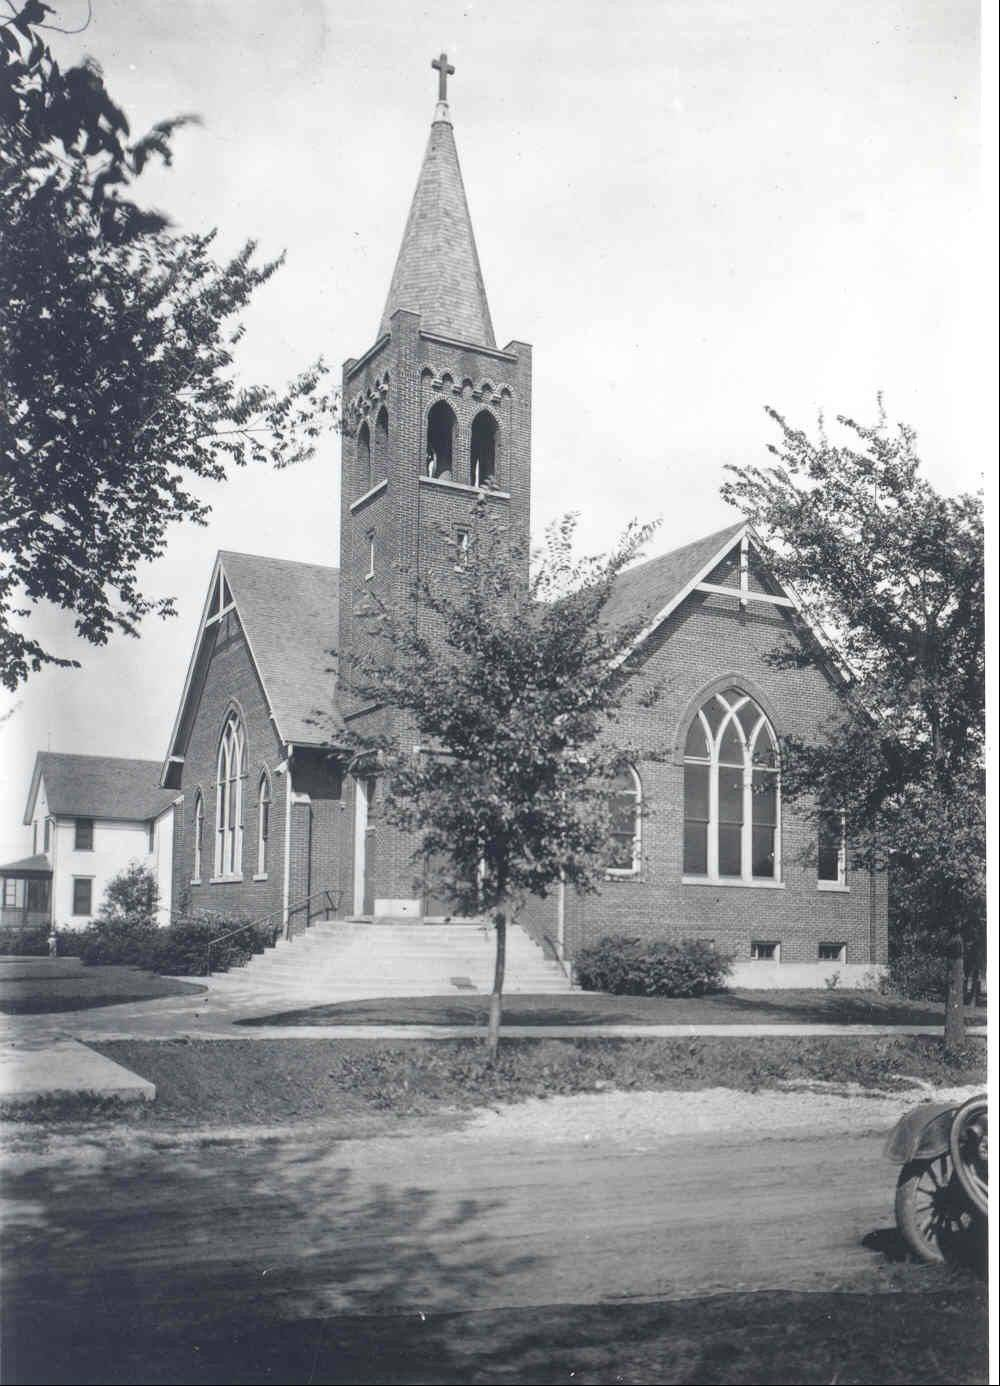 This is St. Paul Lutheran Church's first building, which opened in 1913. The congregation met in Central School after forming in 1912 until this building was completed.